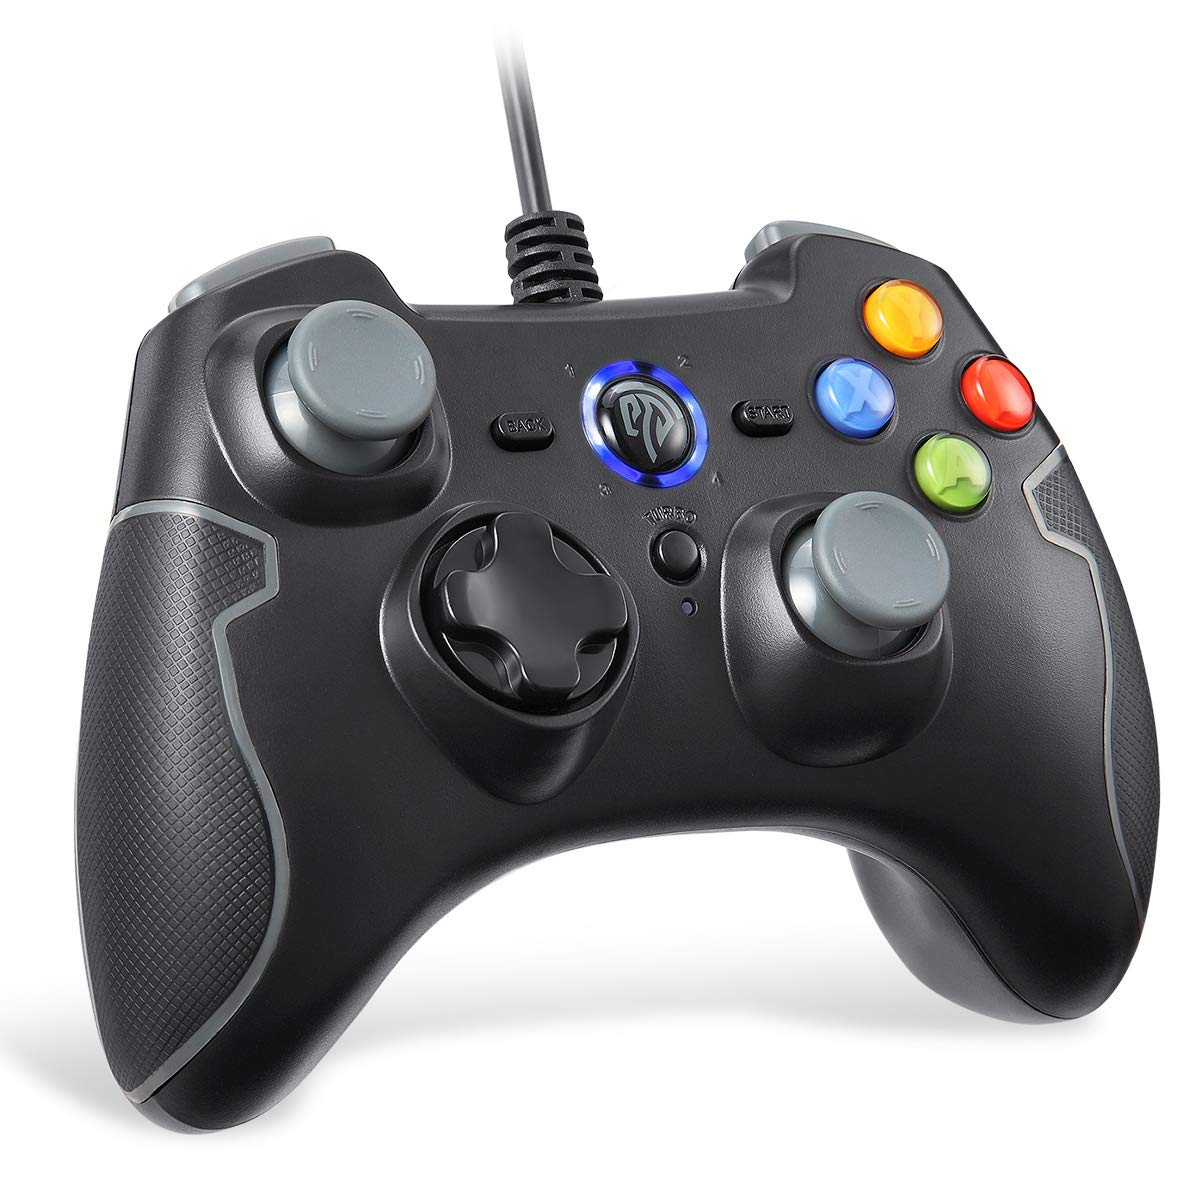 EasySMX Wired Gaming Controller, PC Game Controller Joystick with Dual-Vibration for Windows/Android/ PS3/ TV Box (Gray)